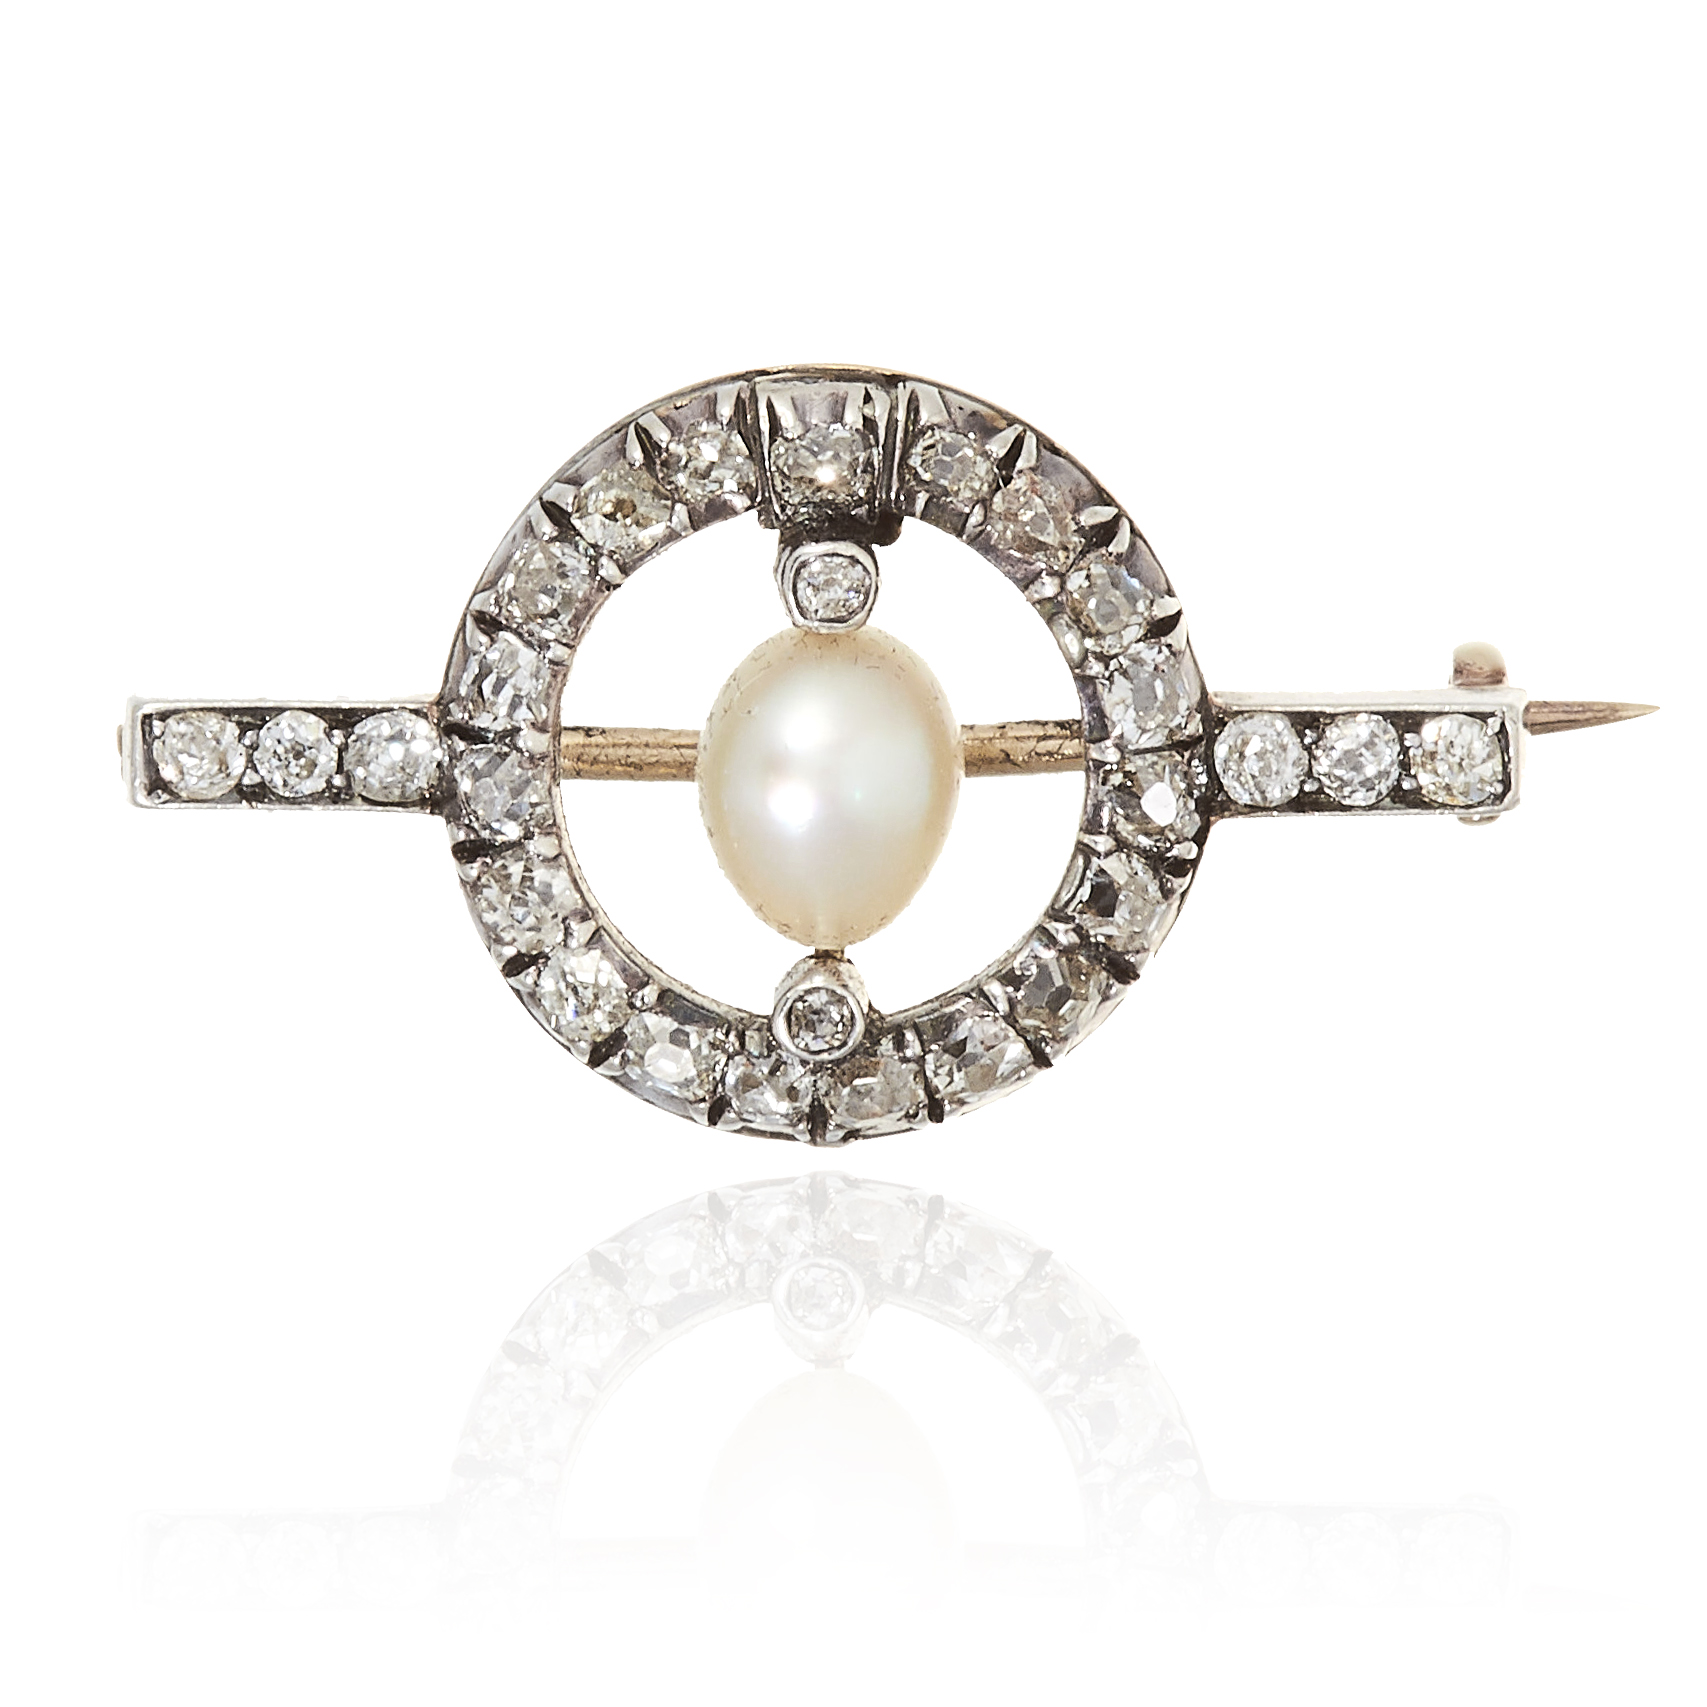 AN ANTIQUE NATURAL PEARL AND DIAMOND BROOCH in gold or platinum, comprising of central pearl